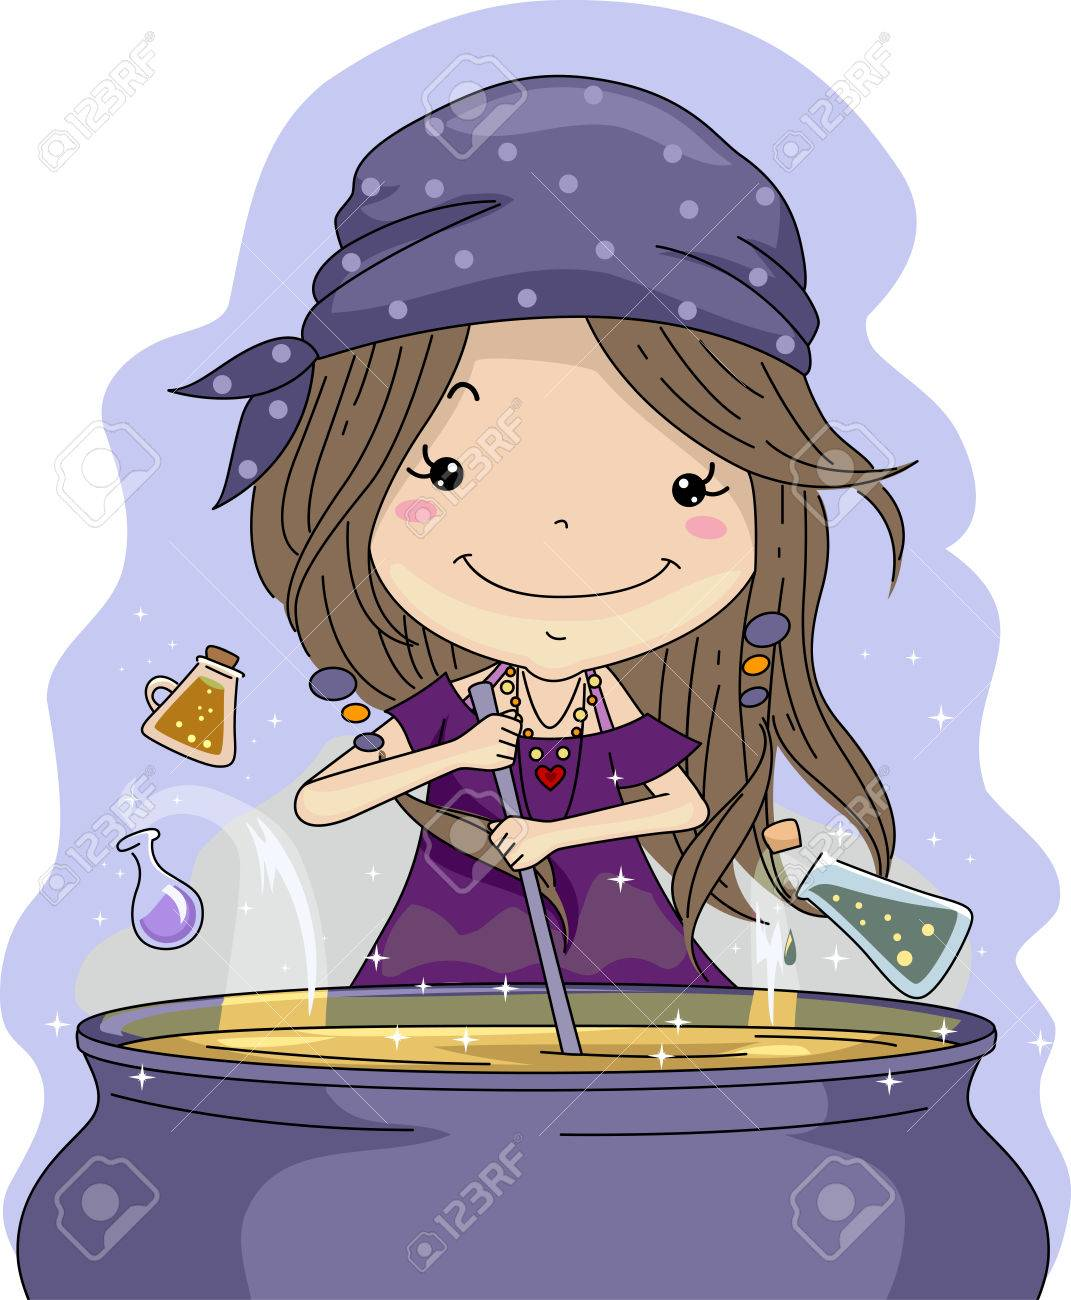 illustration of a little girl mixing potions in a cauldron stock